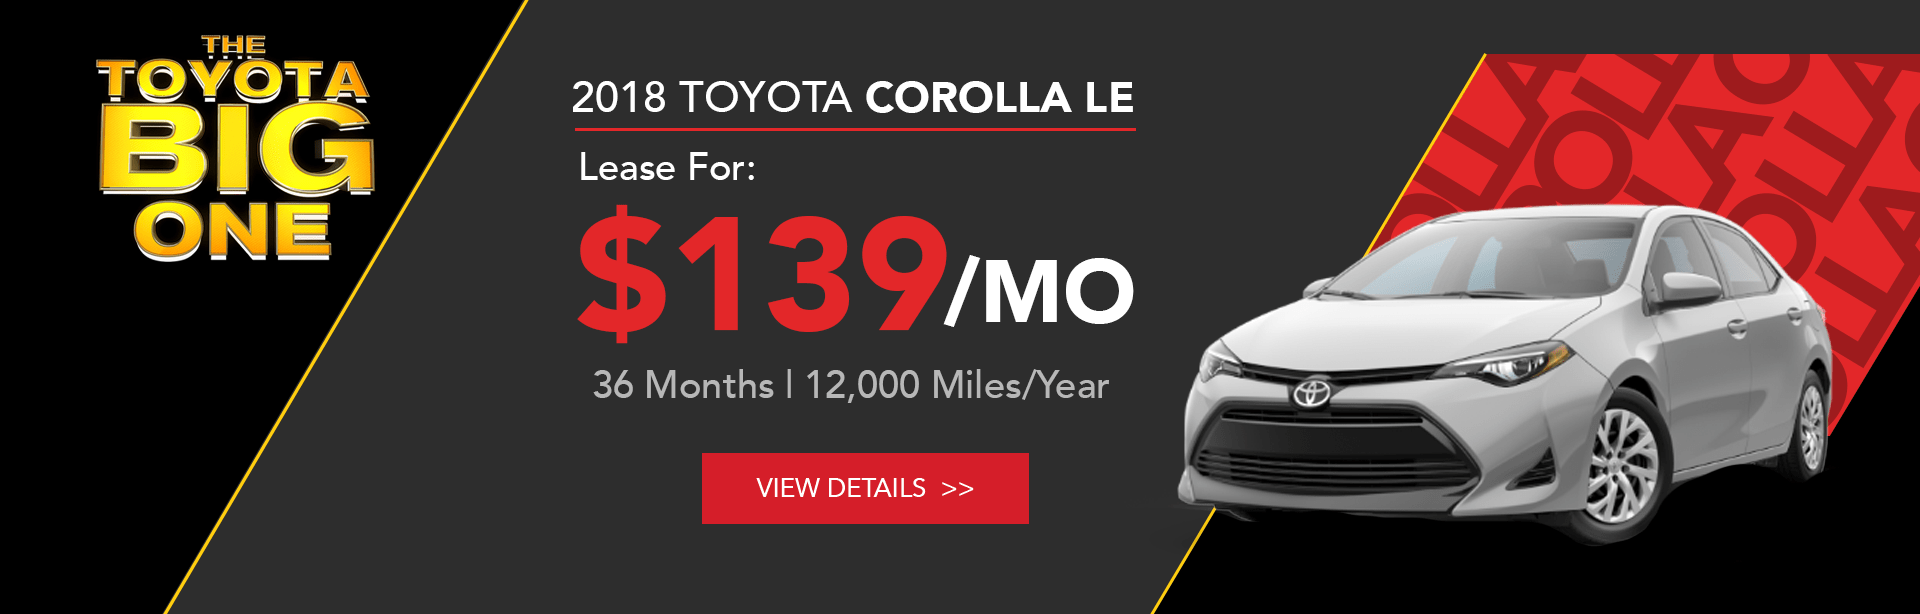 Toyota Corolla Lease Offer